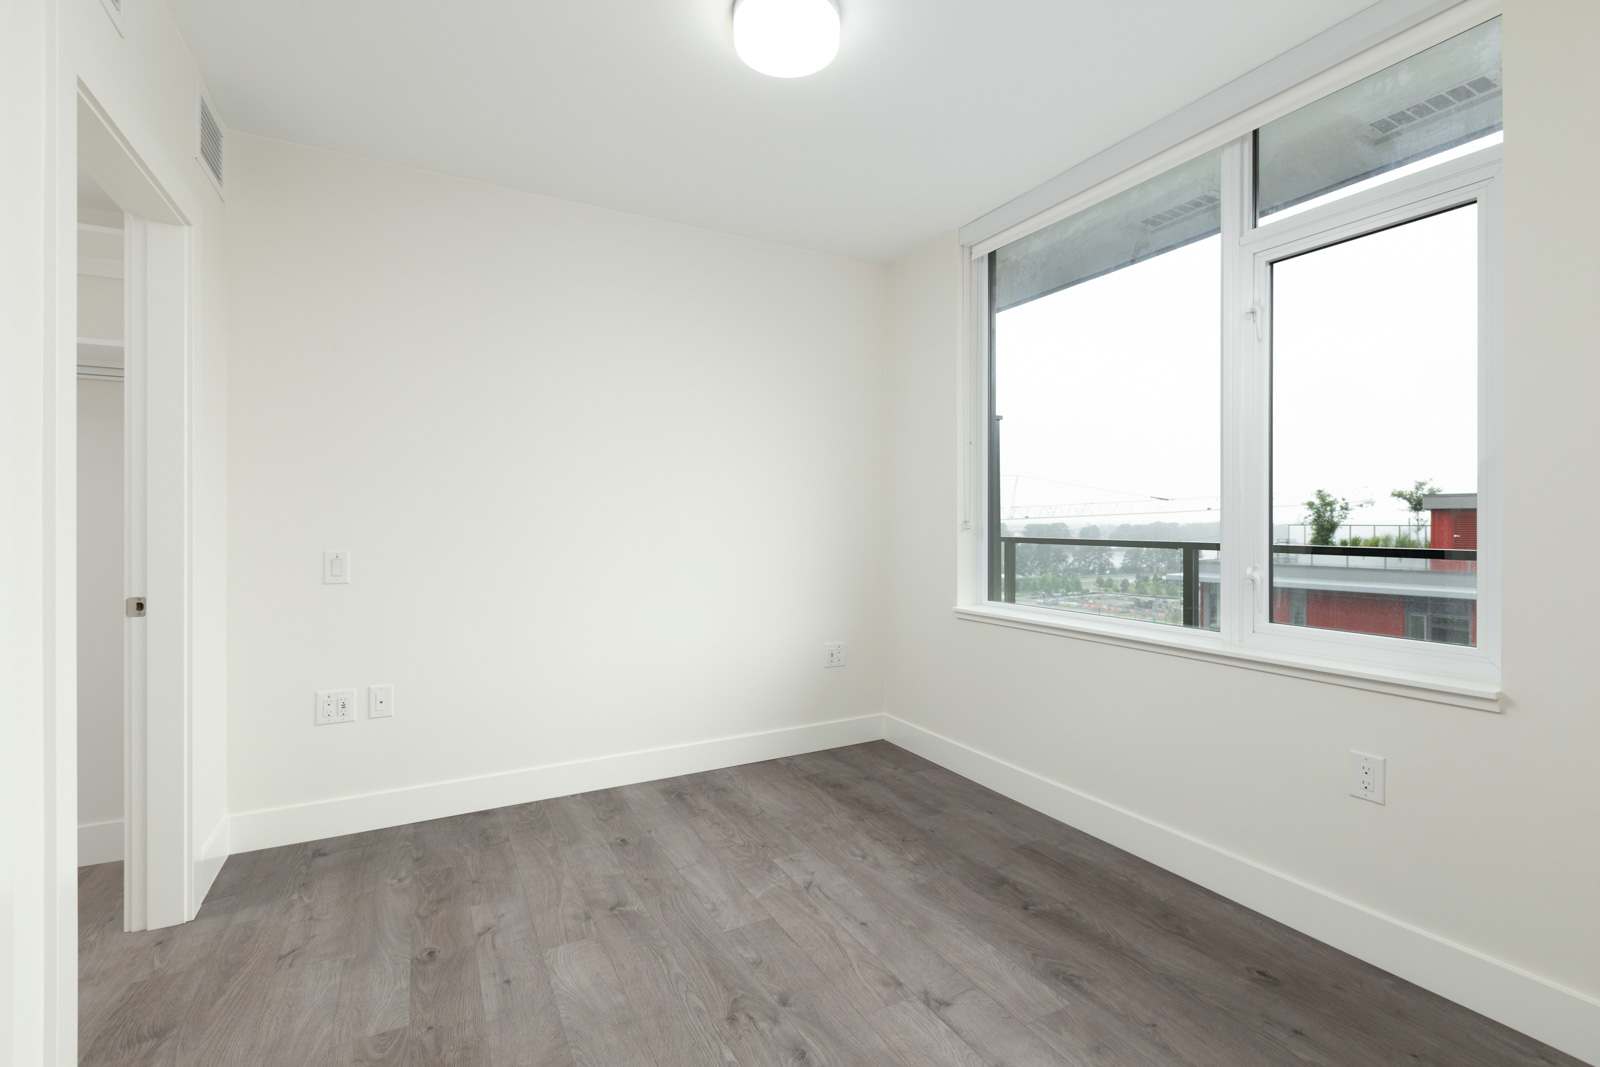 bedroom with white walls and hardwood floors in rental condo in the Downtown neighbourhood of Vancouver